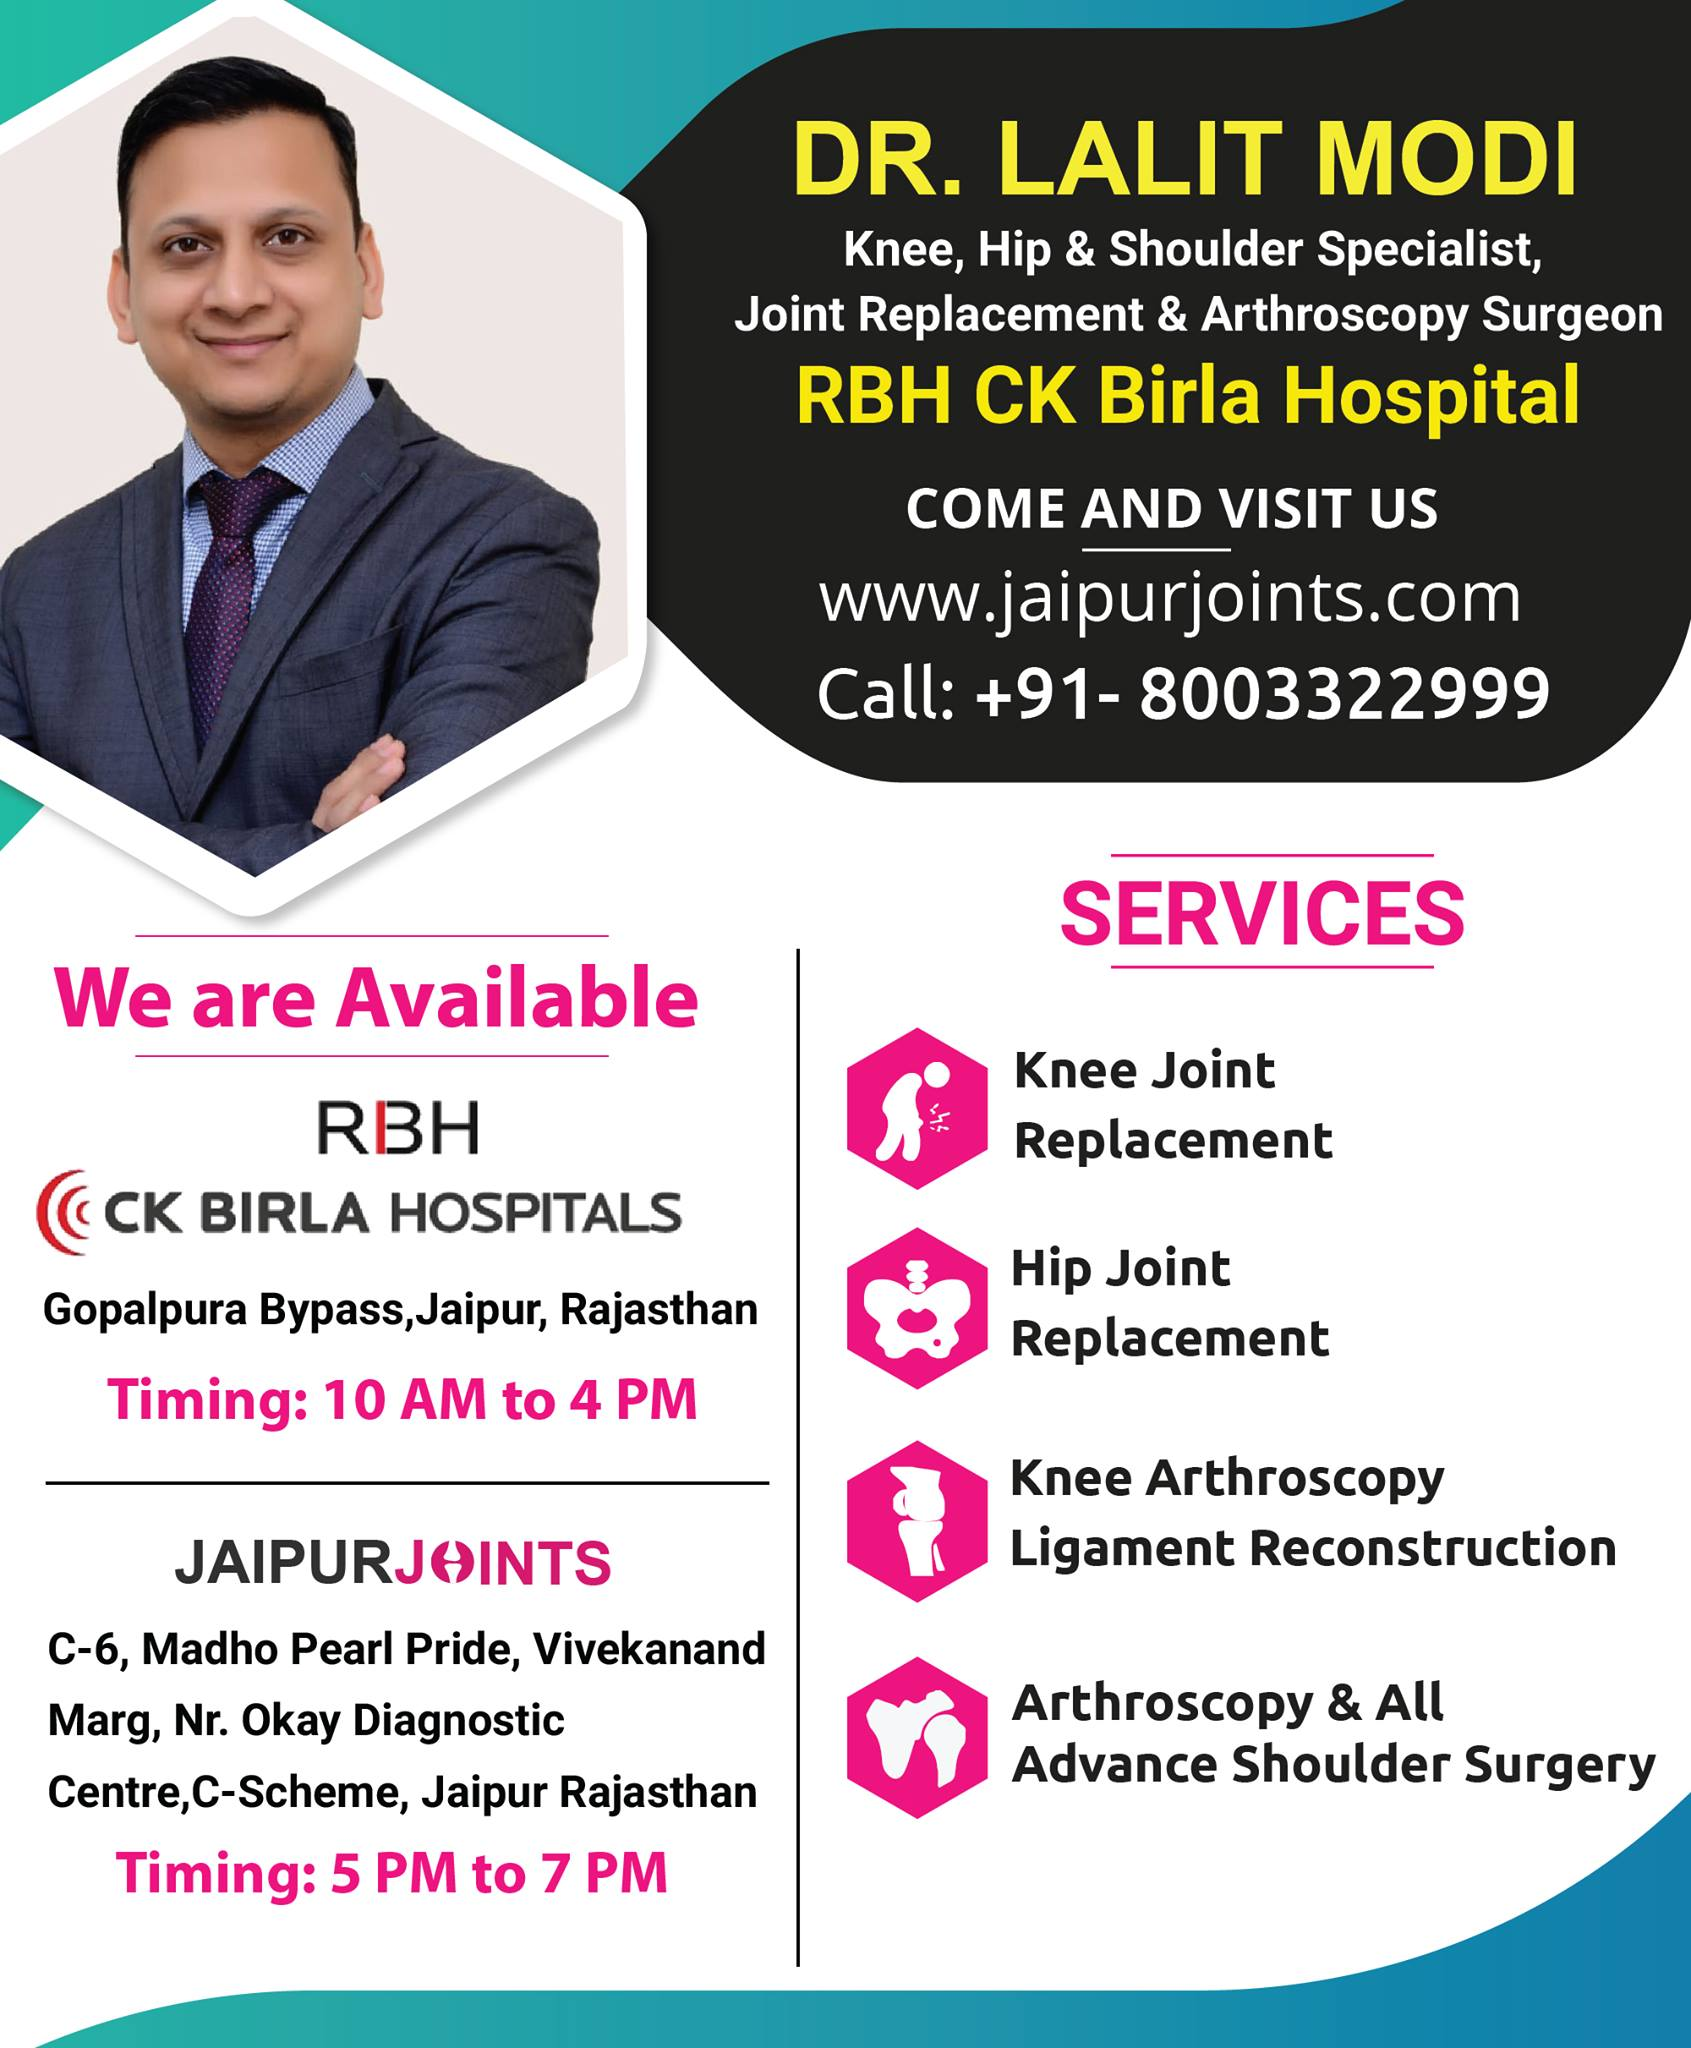 Get total knee replacement surgery in Jaipur by Dr Lalit Modi.